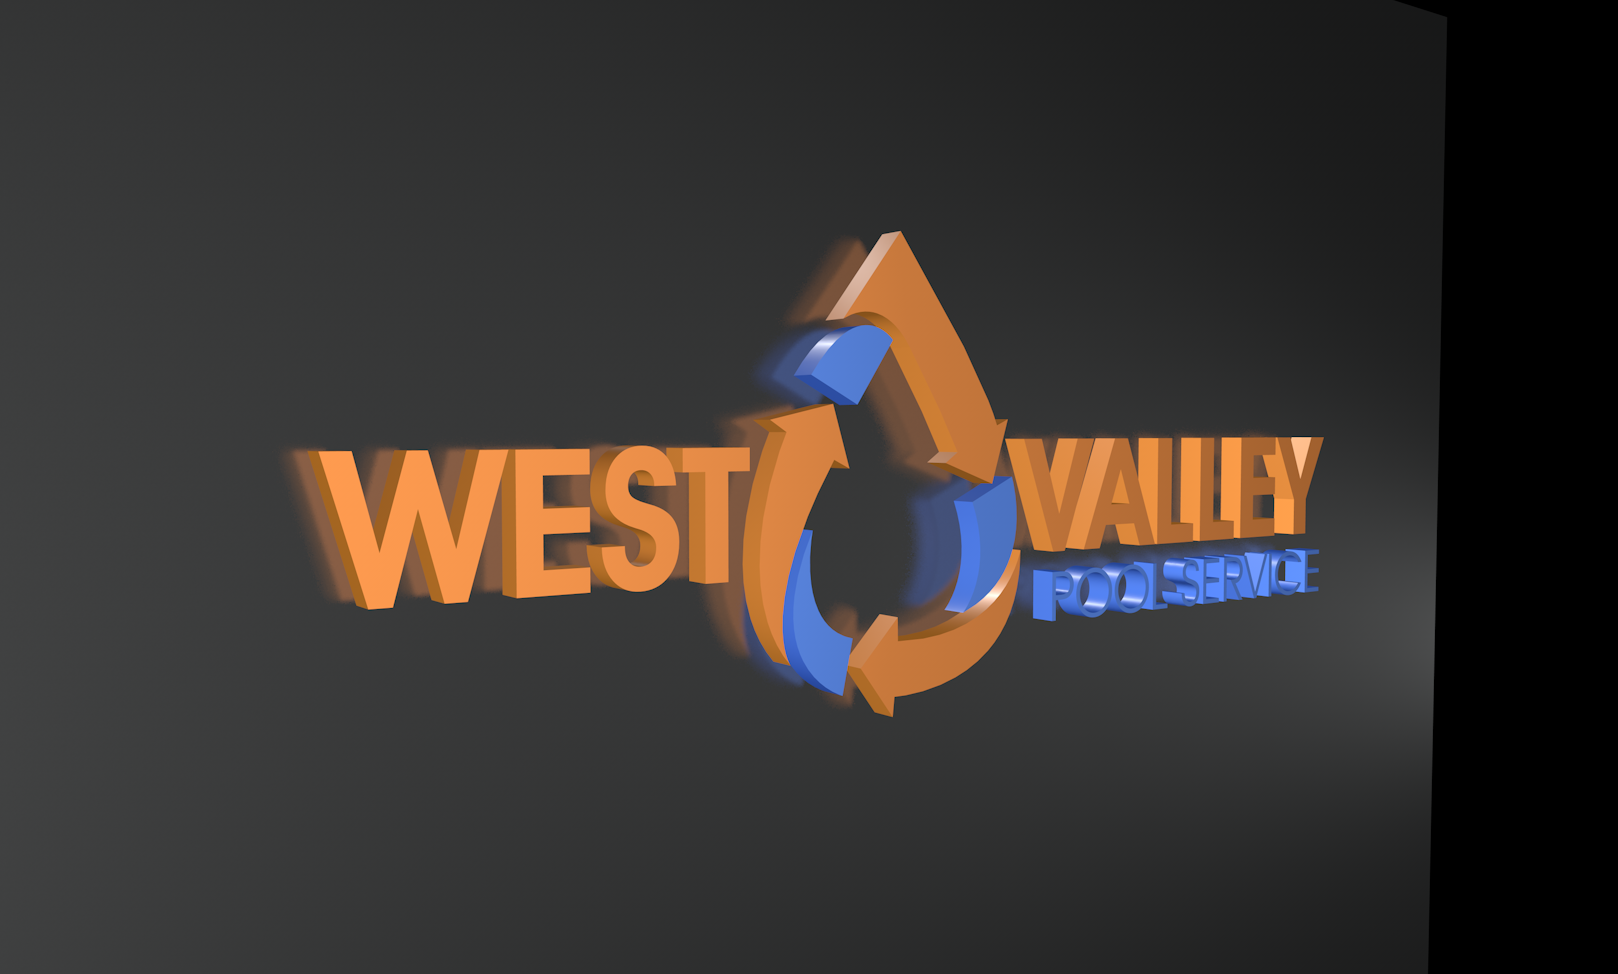 Logo Design by Sampath Gunathilaka - Entry No. 38 in the Logo Design Contest Clever Logo Design for West Valley Pool Service.